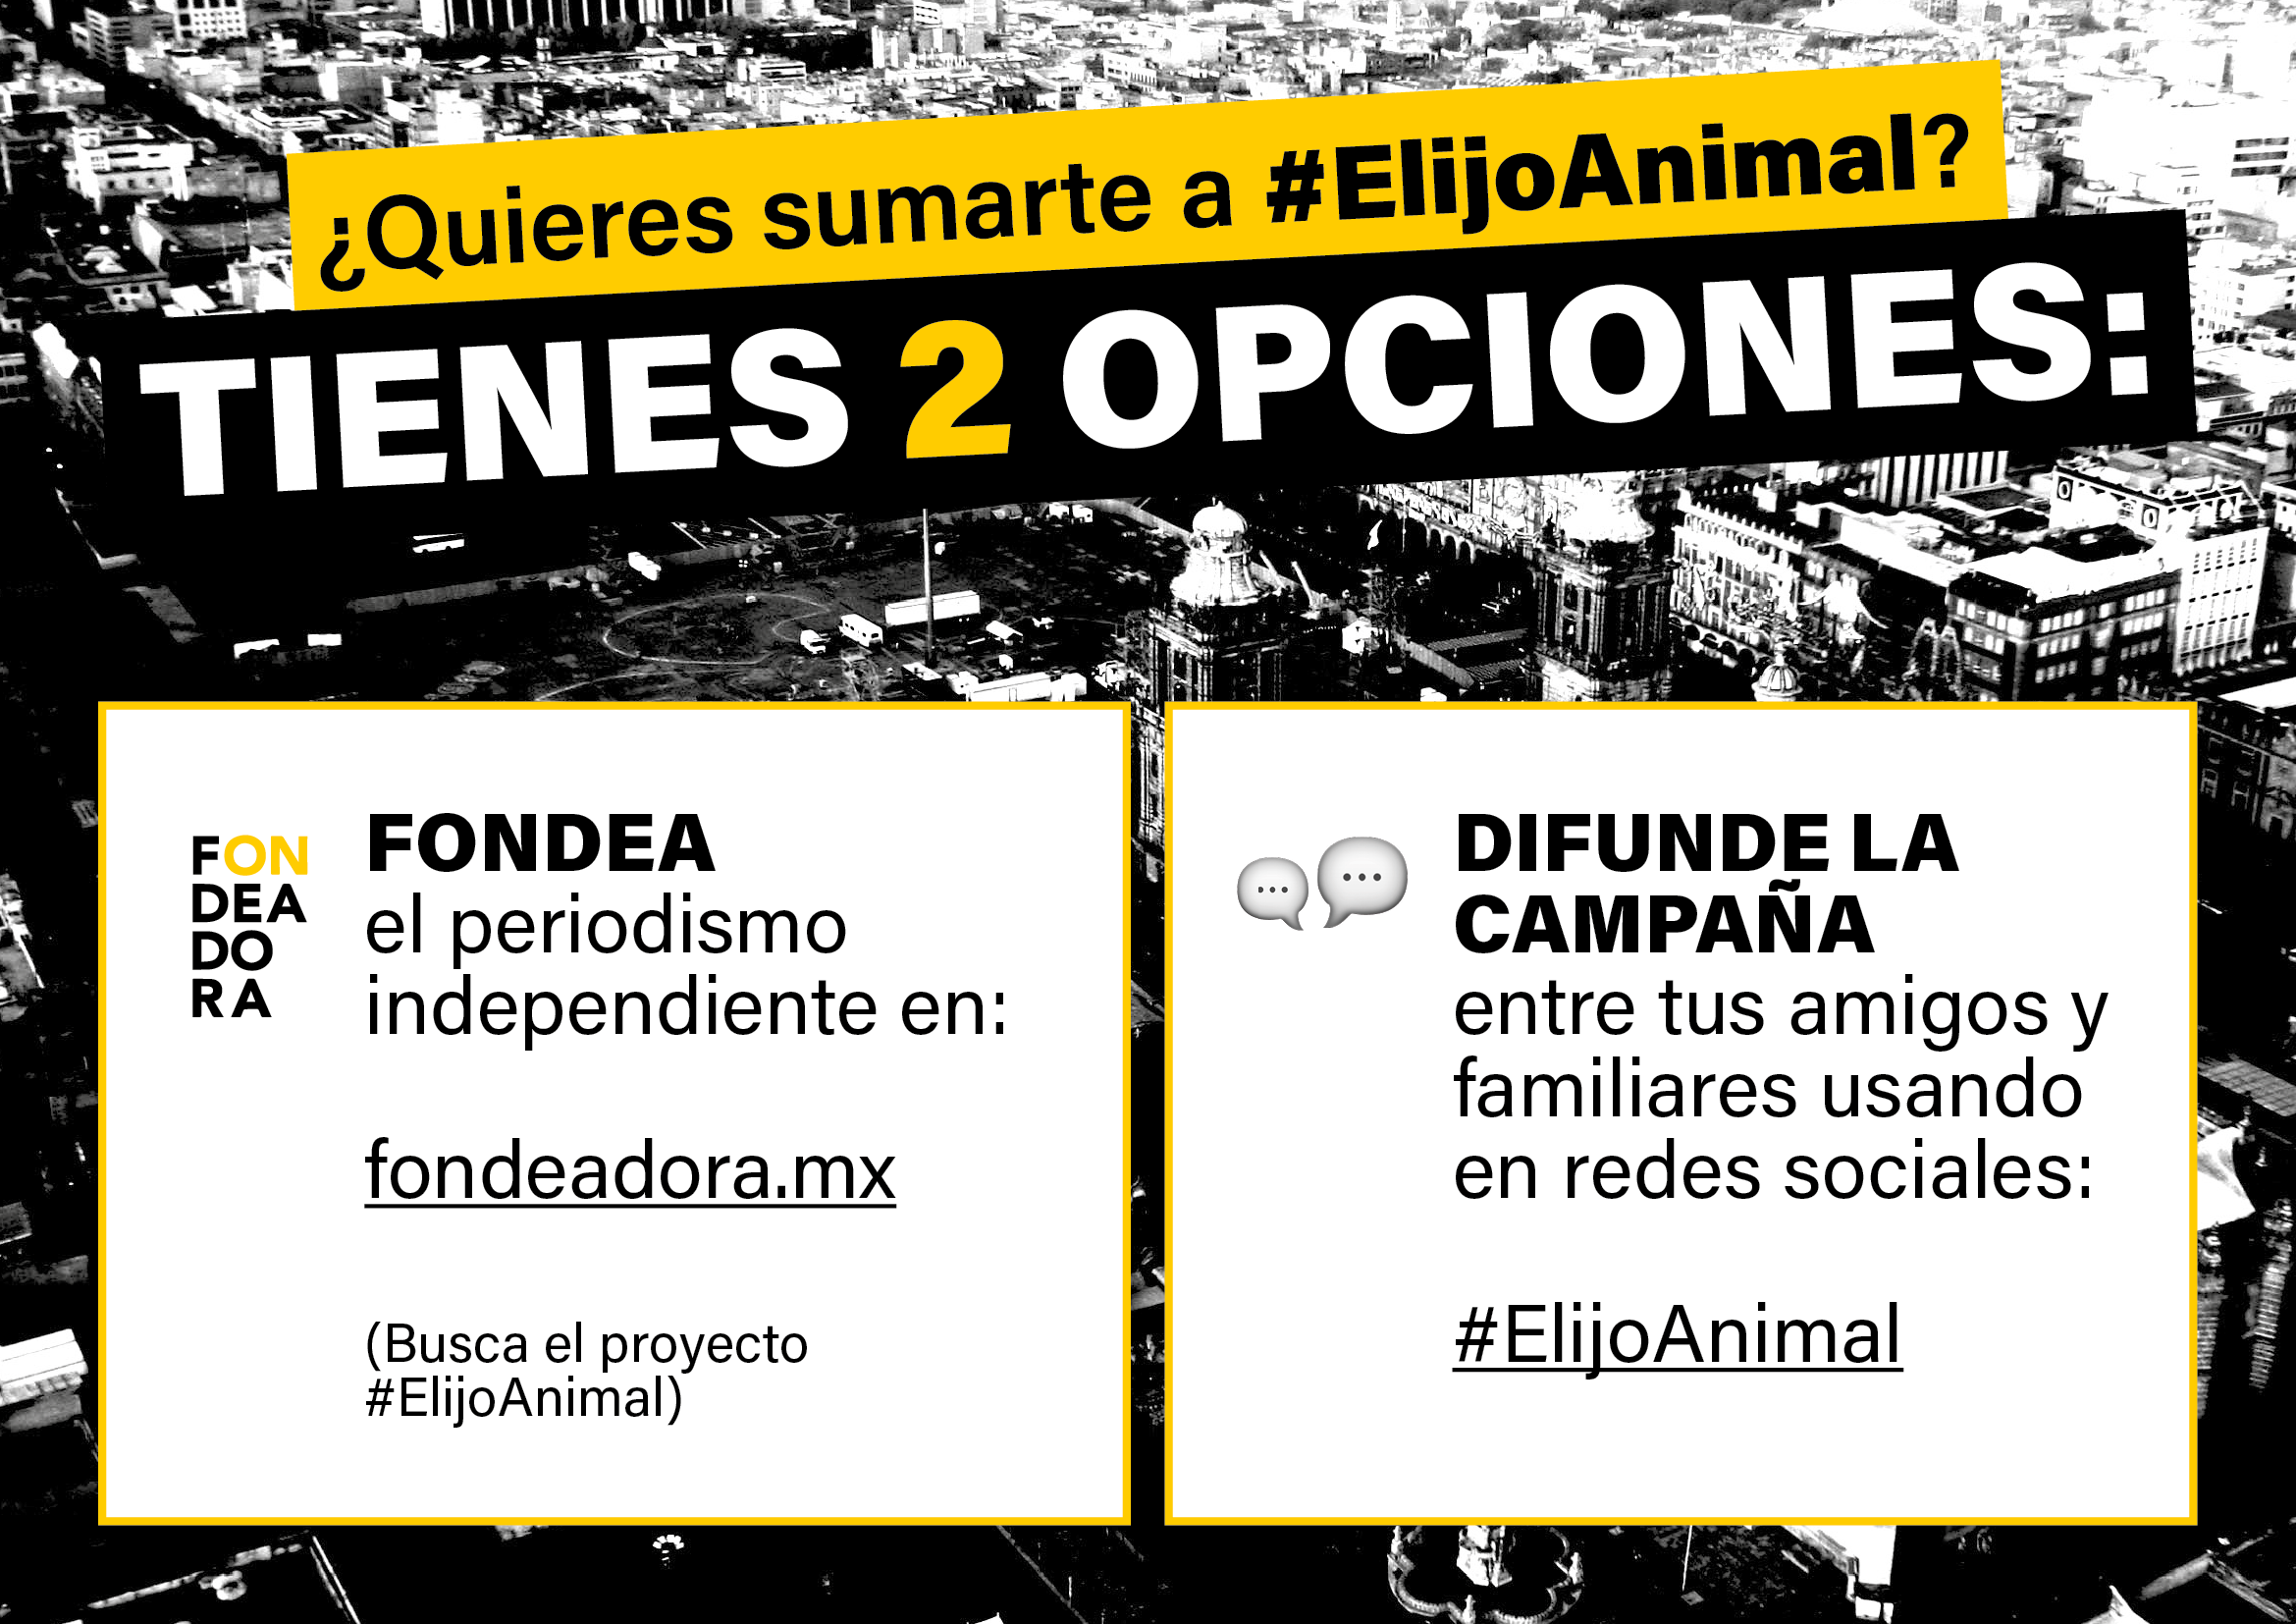 Elijo Animal sumate